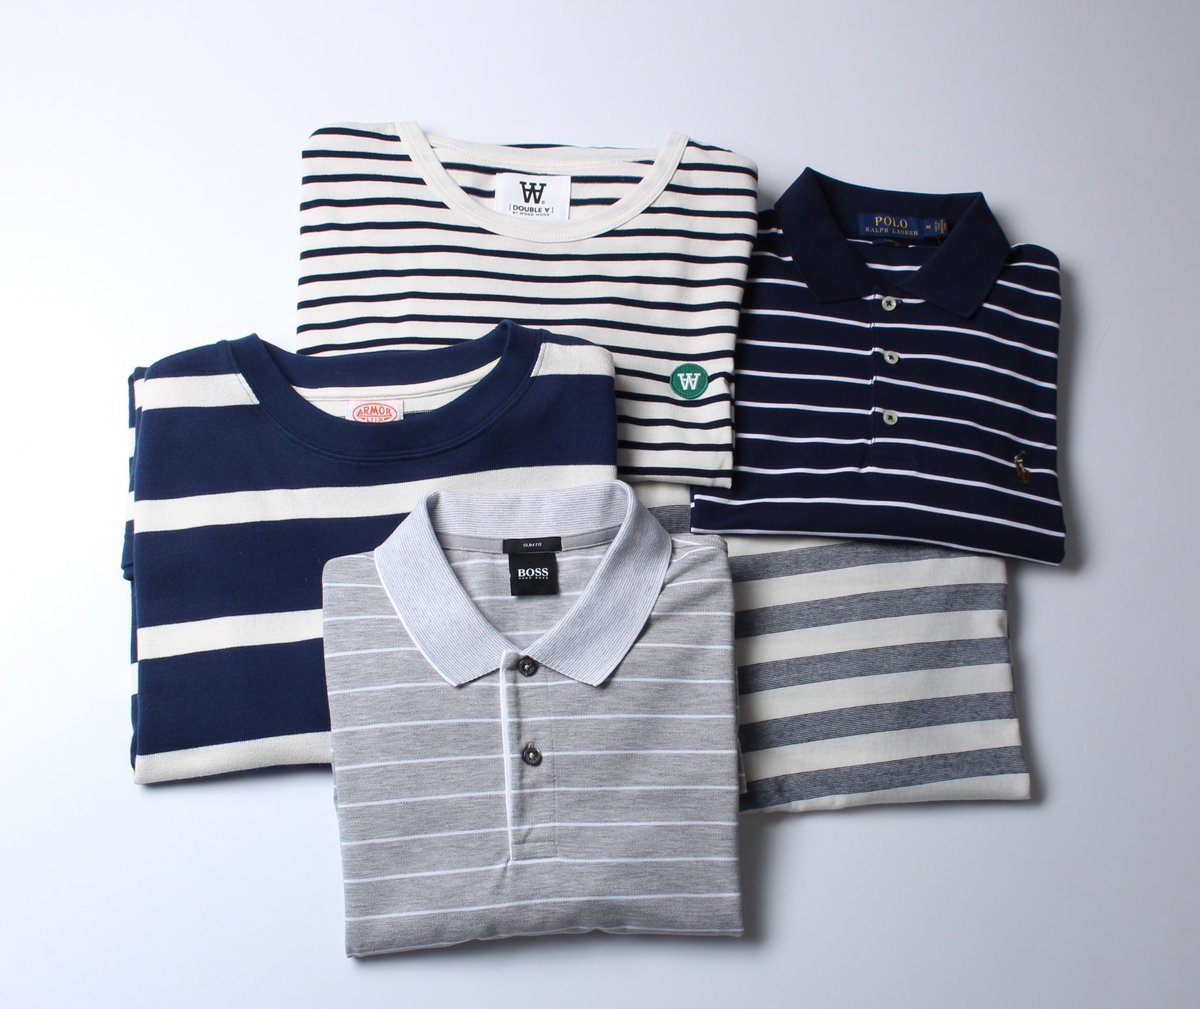 Woodhouse Clothing On Twitter Stripe Up Your Life And Wardrobe